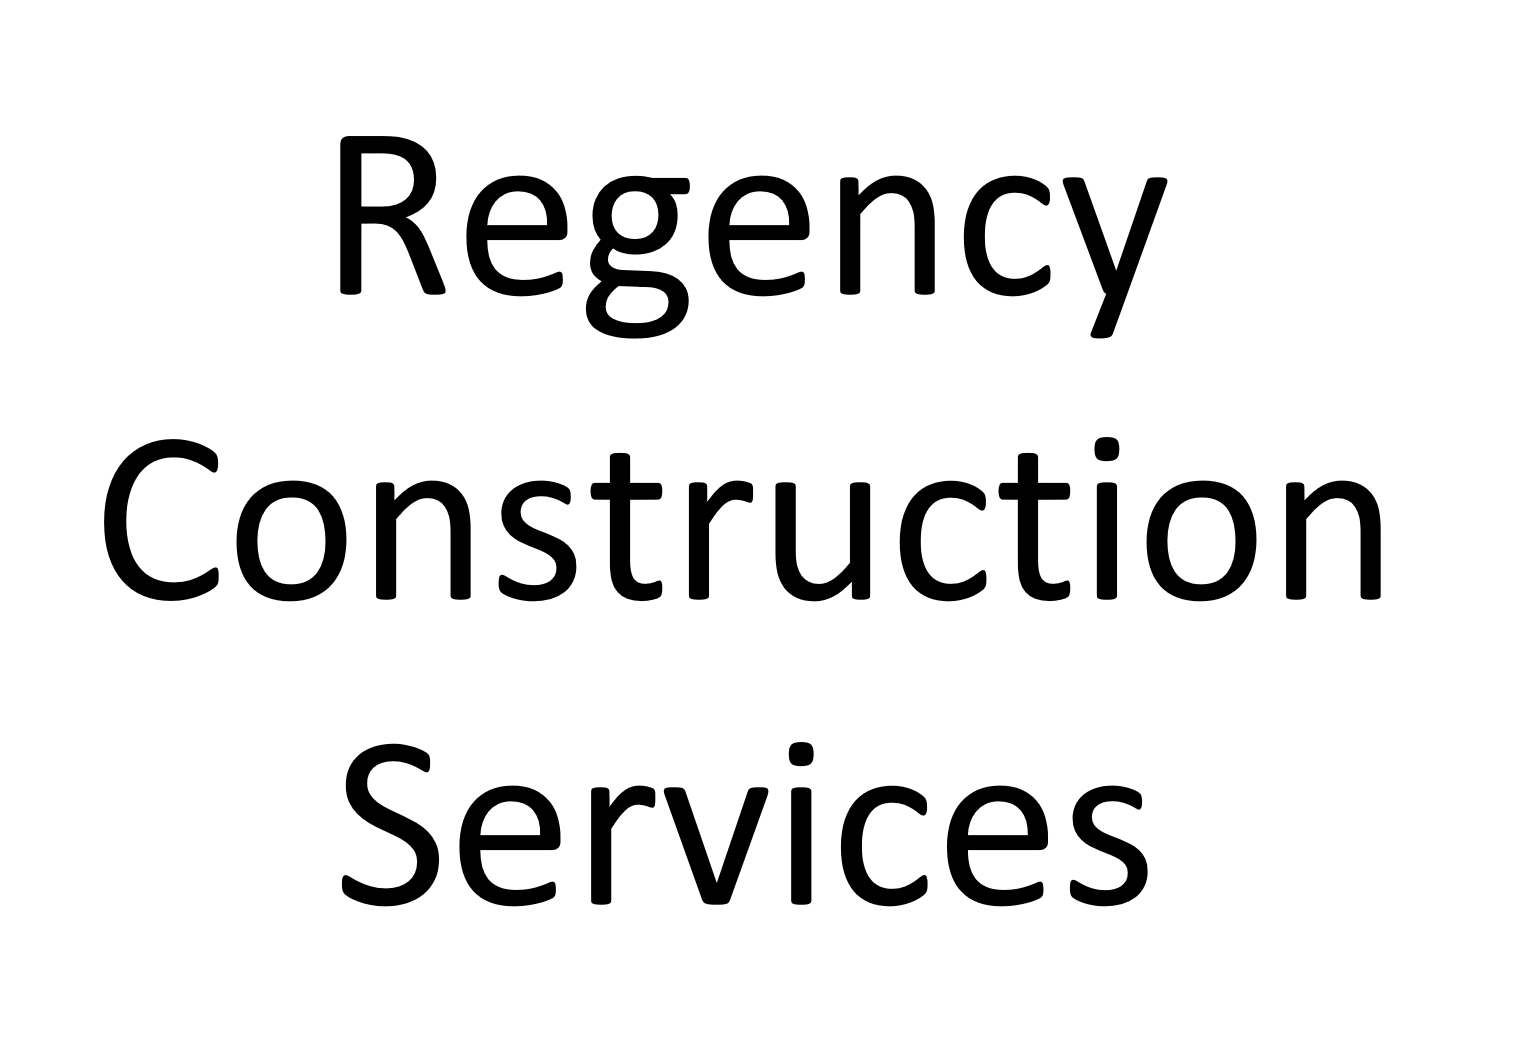 Regency Construction Services Name